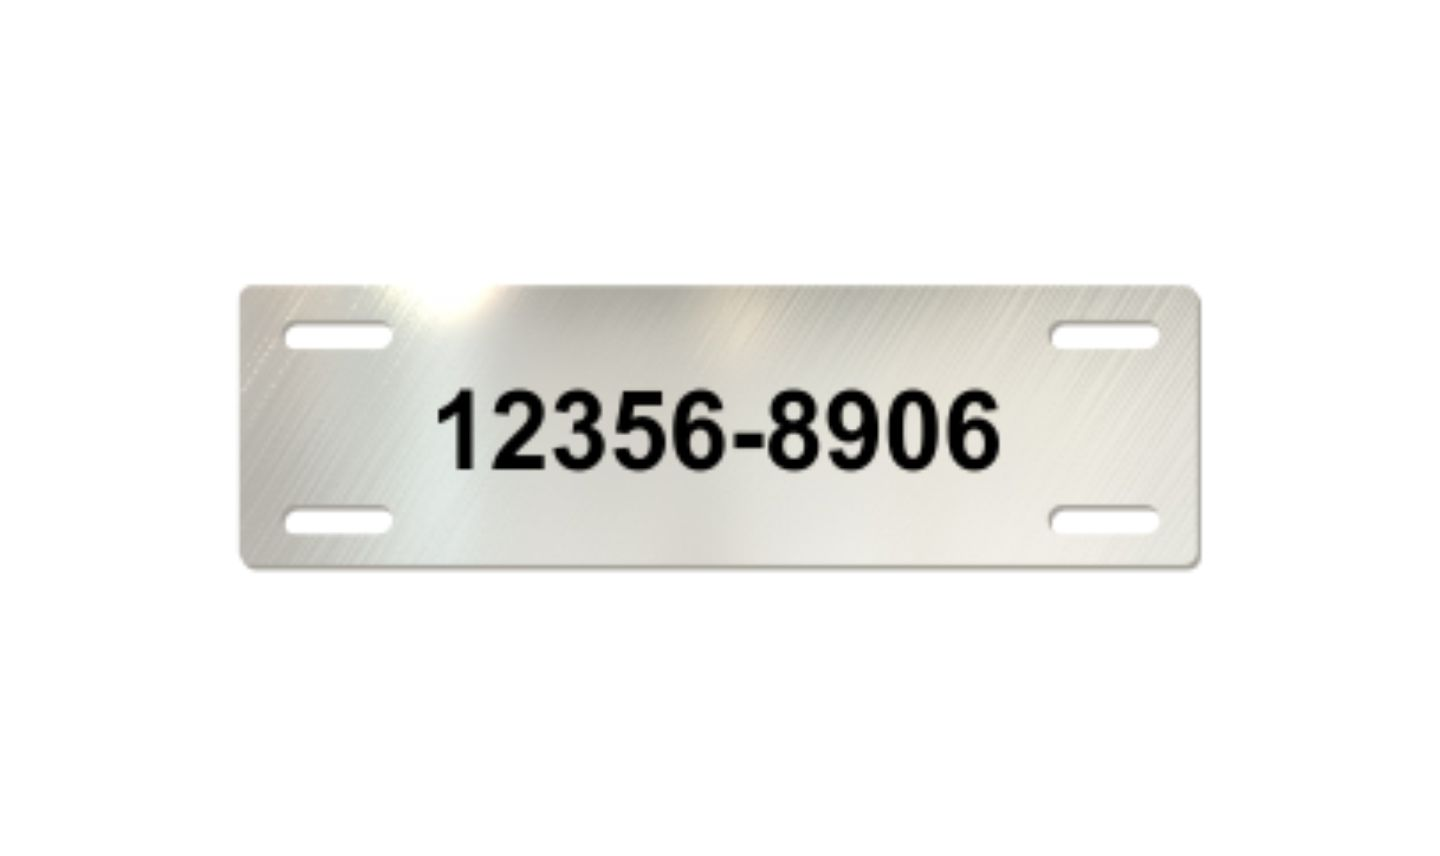 Stainless Steel Cable Tag 7 8 X 3 Inch